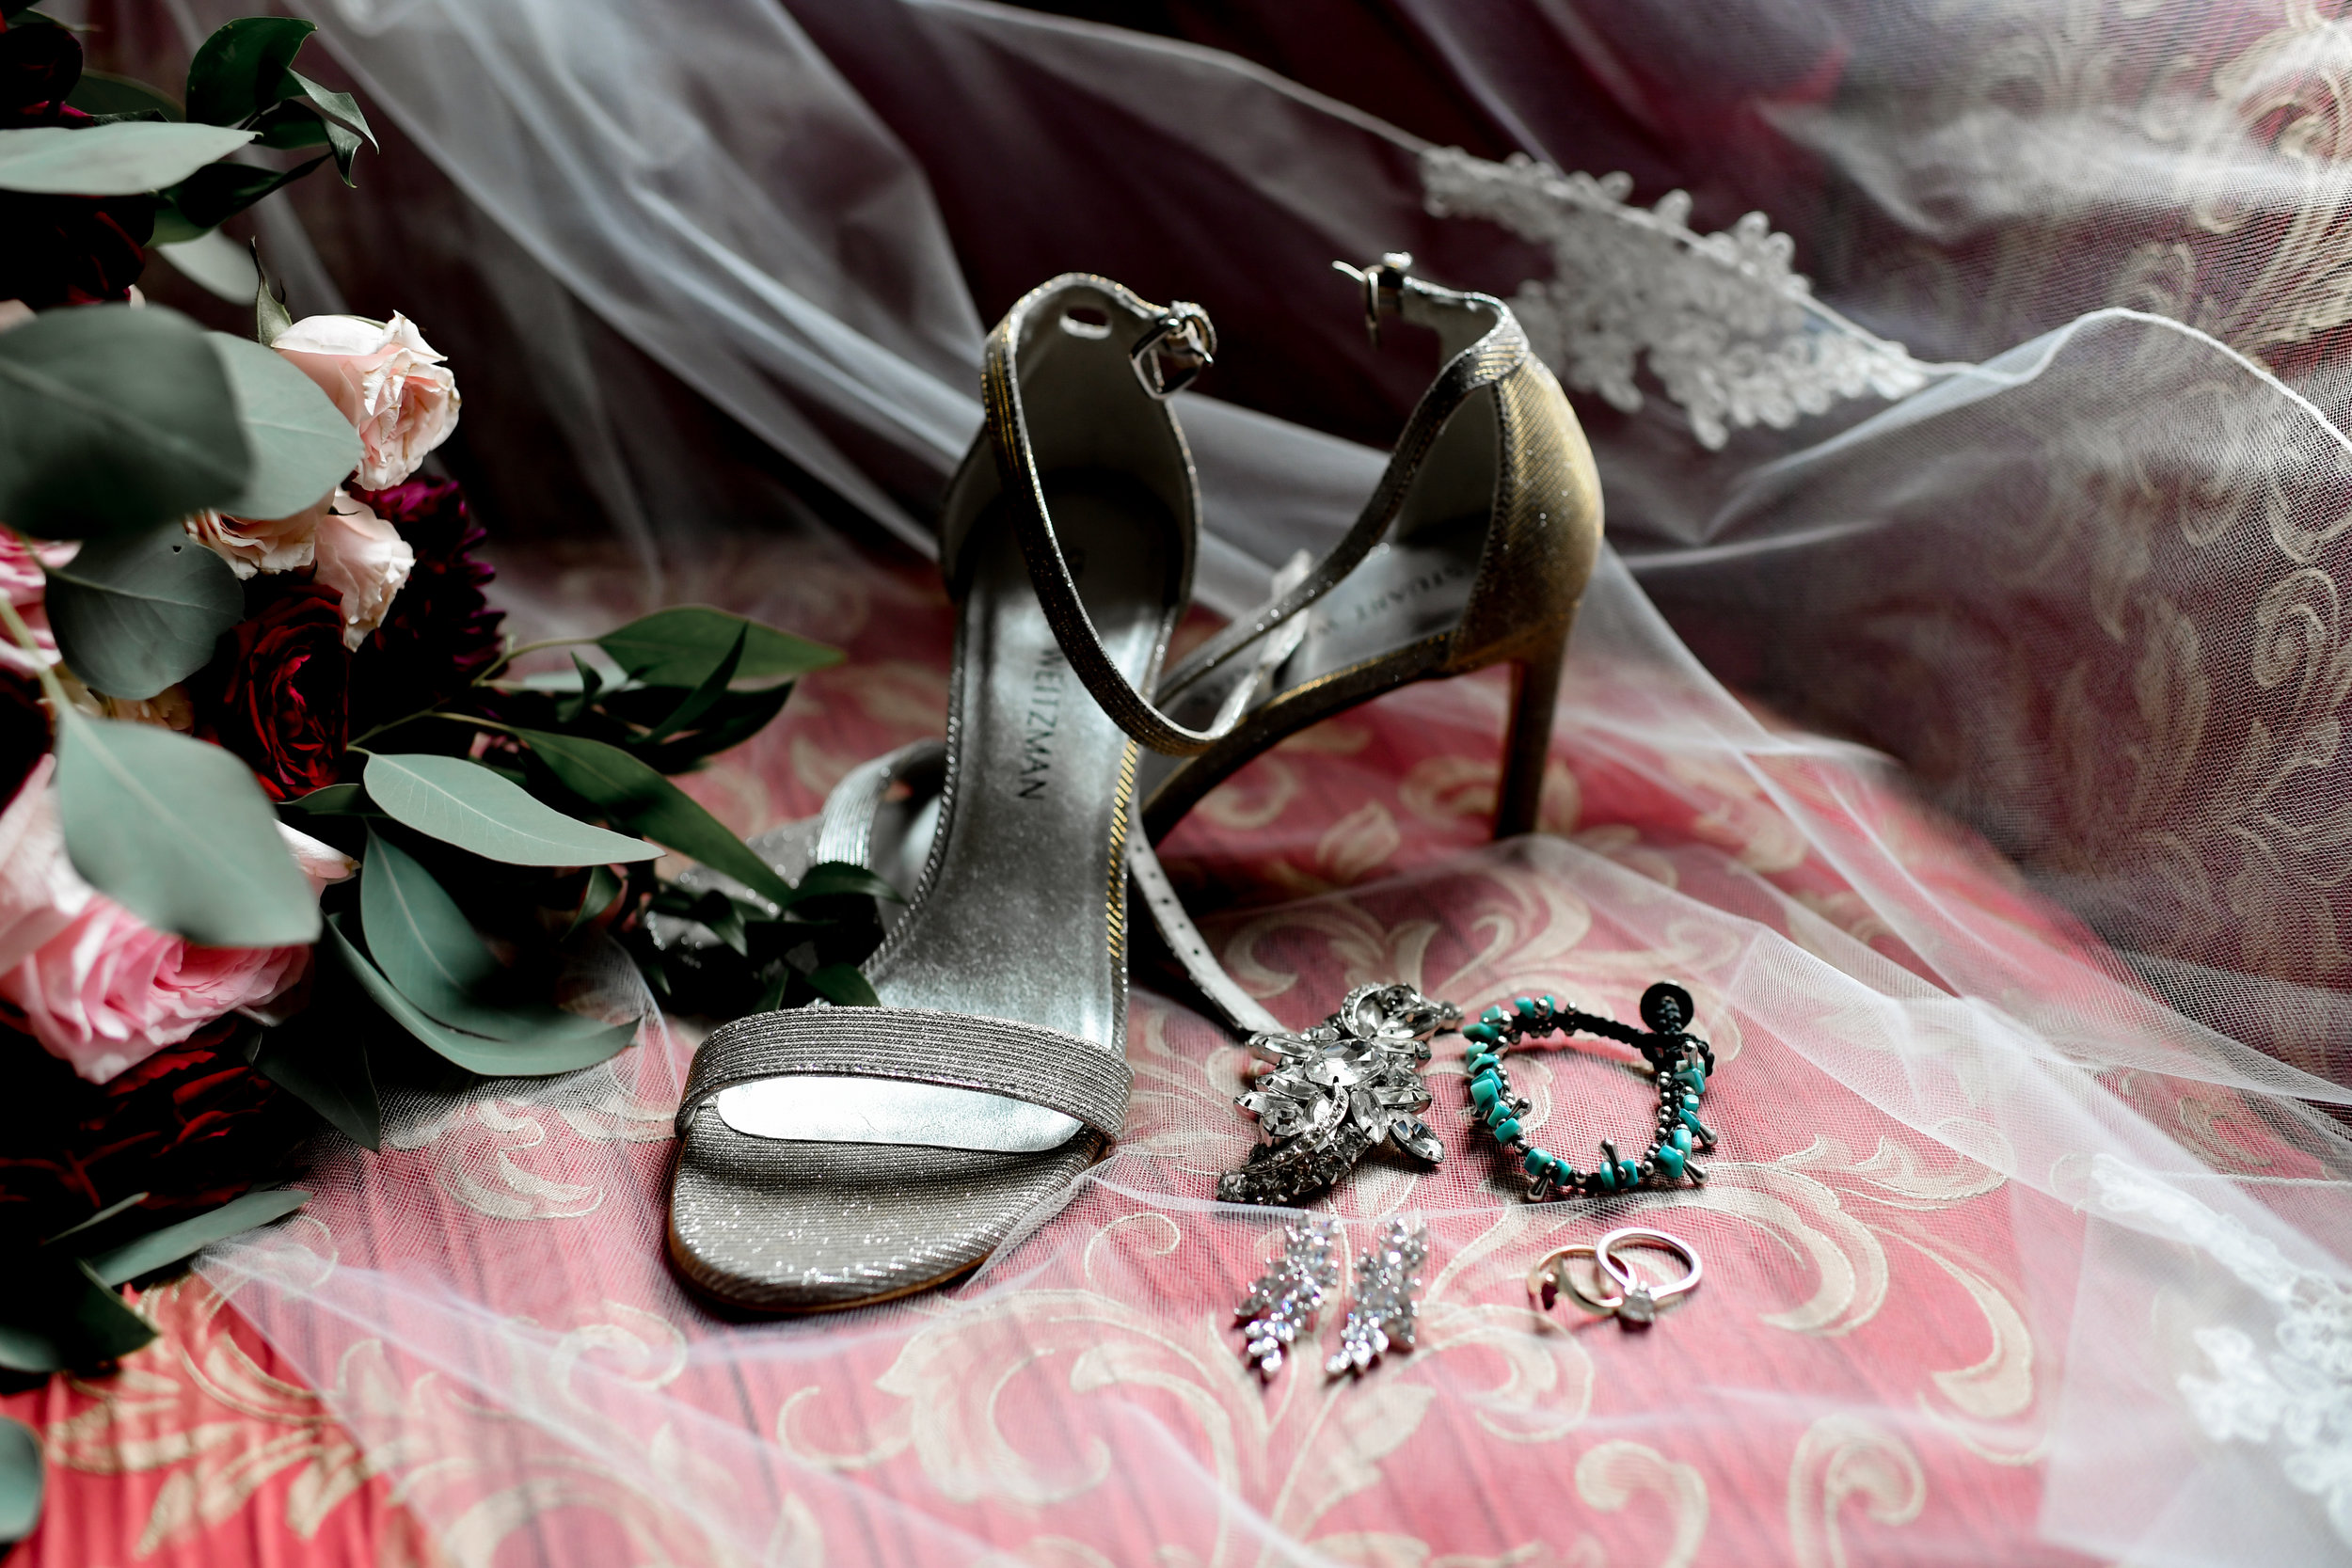 Bride's wedding shoes and accessories for Buffalo, NY wedding planned by Exhale Events. Find more wedding inspiration at exhale-events.com!